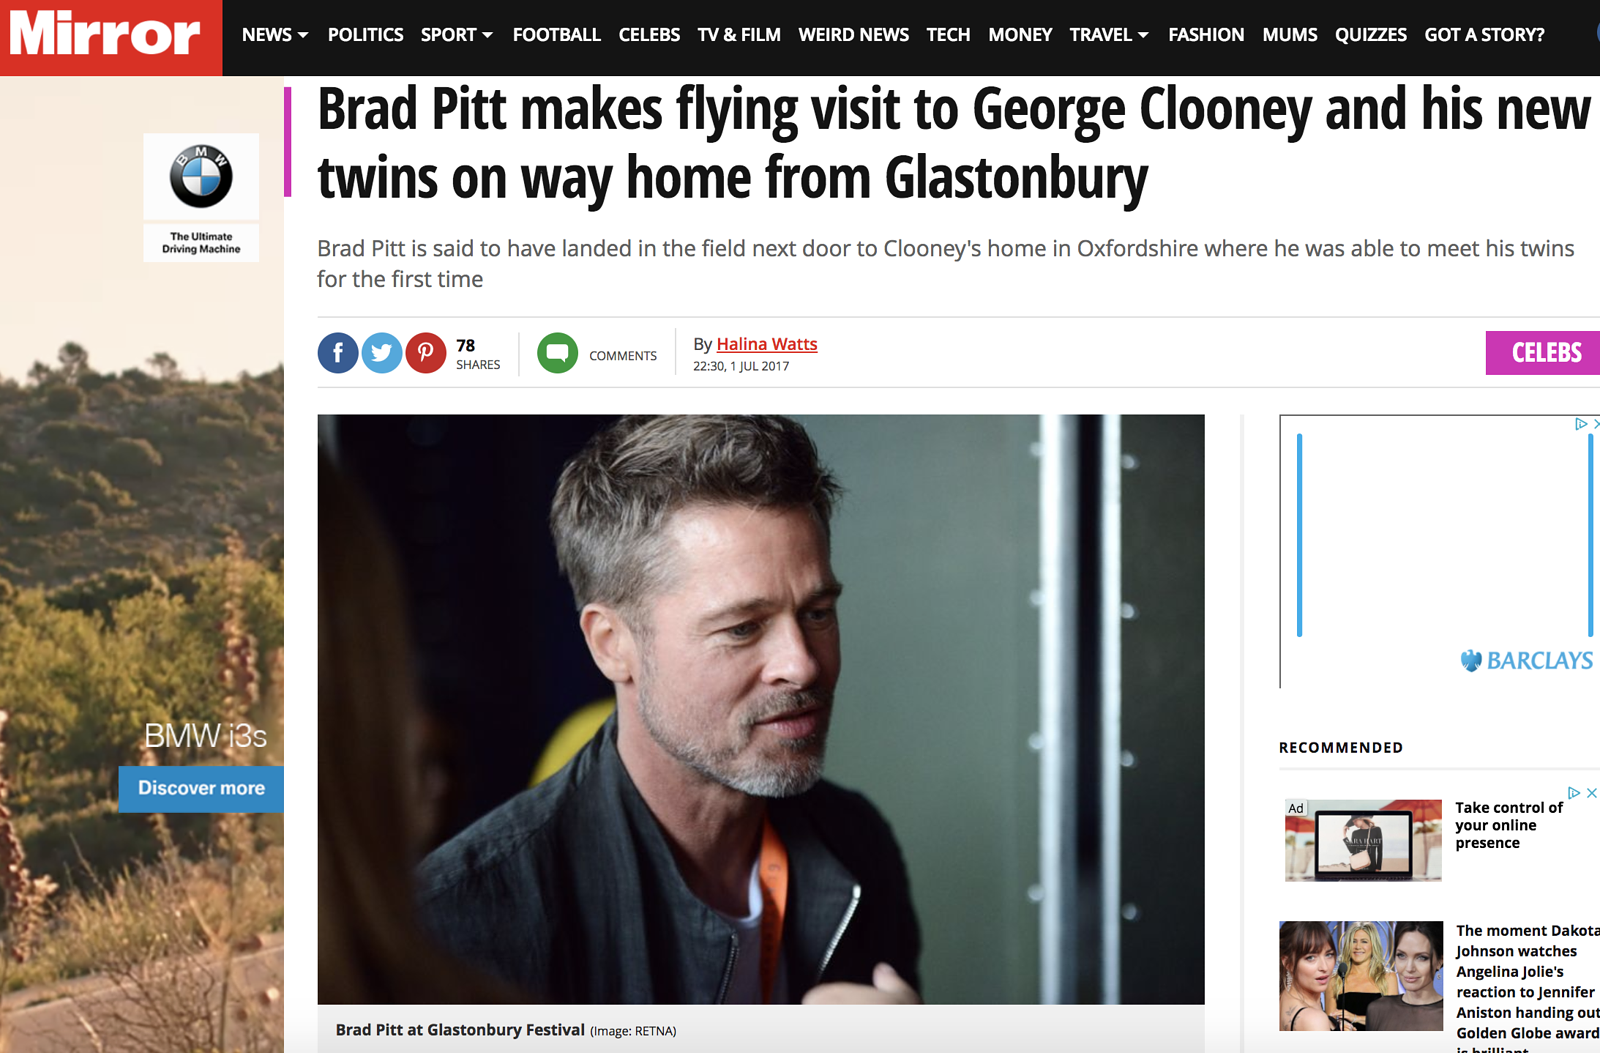 Brad Pitt at Glastonbury 2017